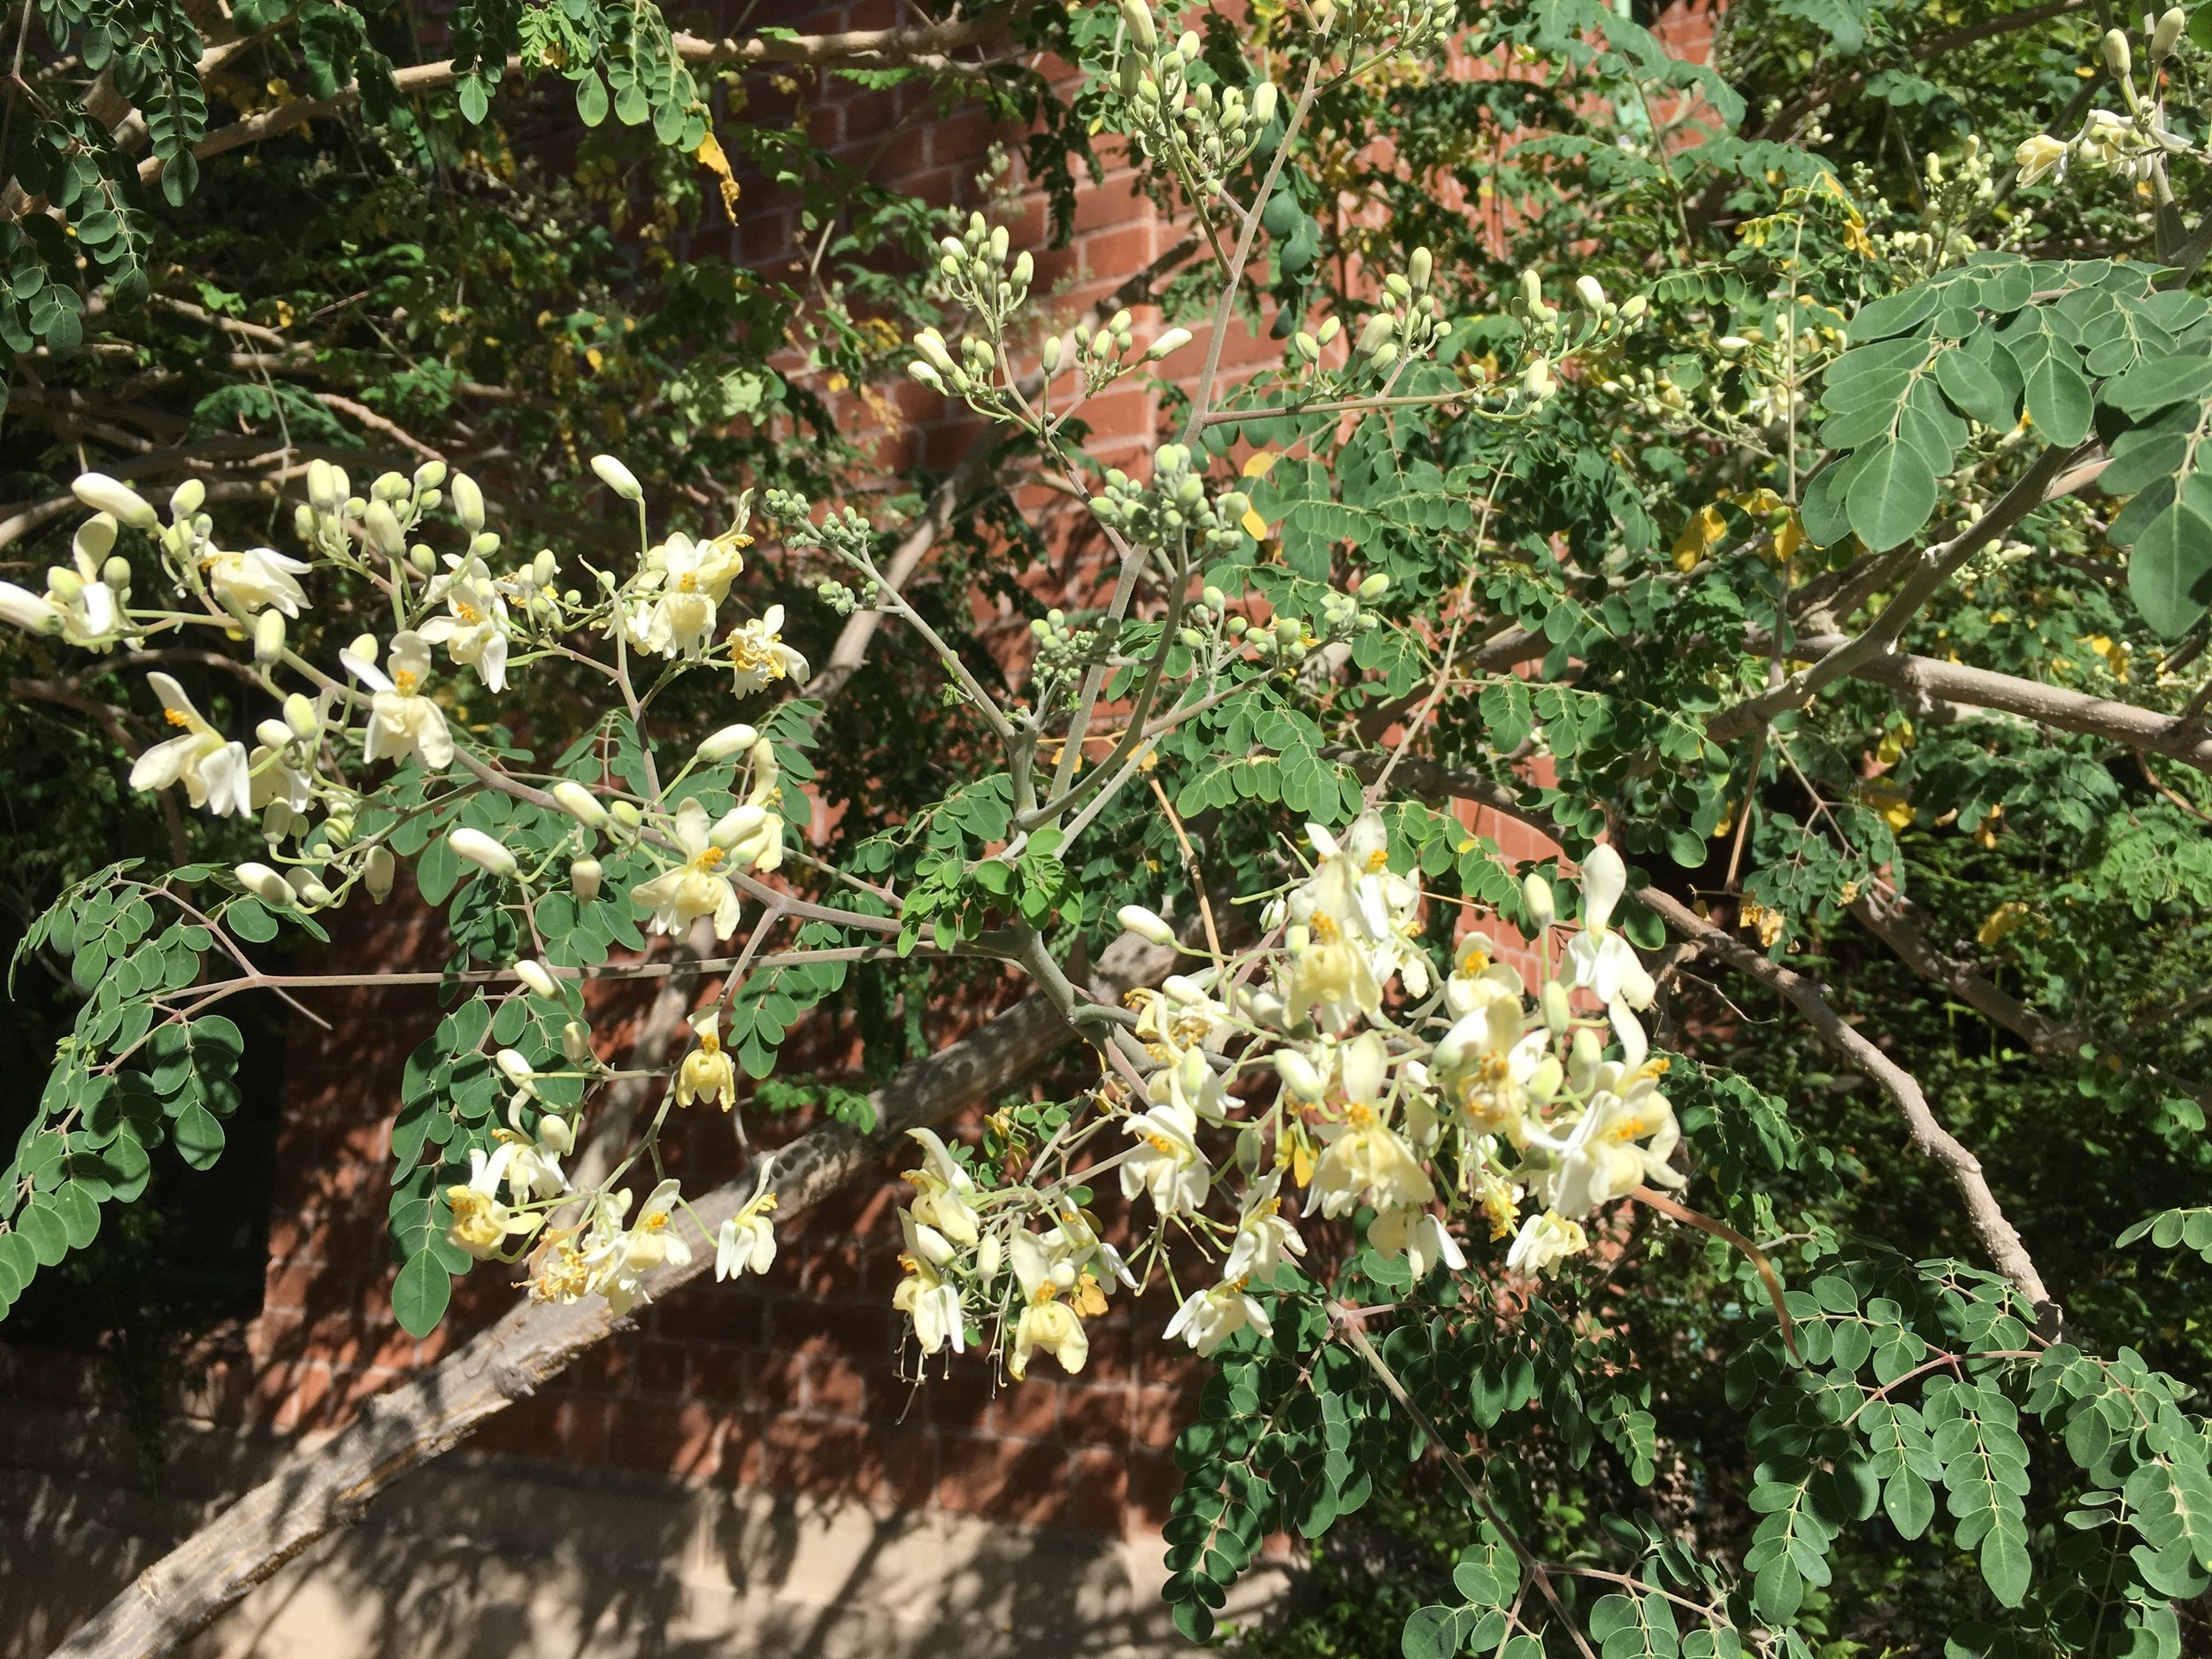 The horseradish tree, a native of India, is almost completely edible, the UA aboretum says. That includes the leaves, flowers, seeds and roots. There are several specimens on campus and in bloom now.  By the way, the UA  arboretum  web site is terrific. You can find lots of information about the plants on campus and a map of where they are. You can sign up for plant tours. Or you can access a mobile self-guided tour.